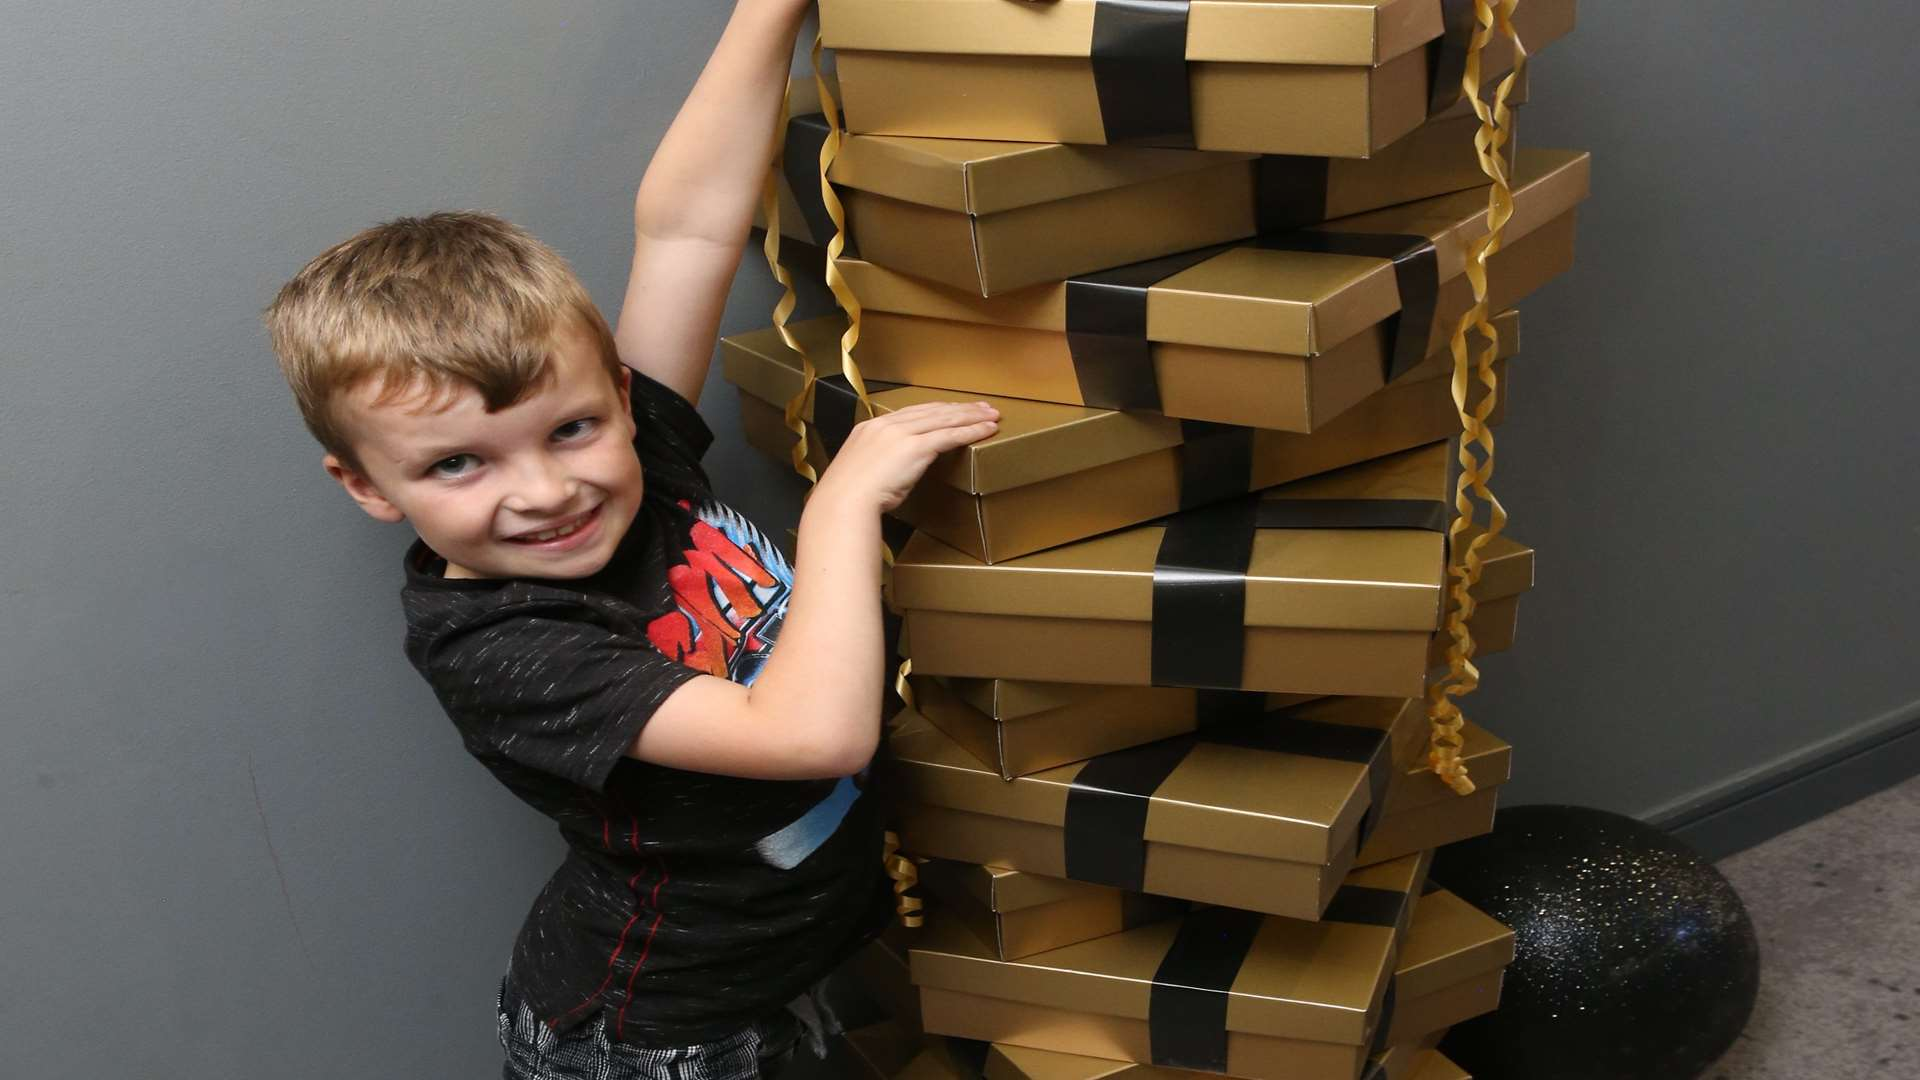 Aidan Louch, seven, checks out the decoration gift boxes at Village Hotel's Yule Fest